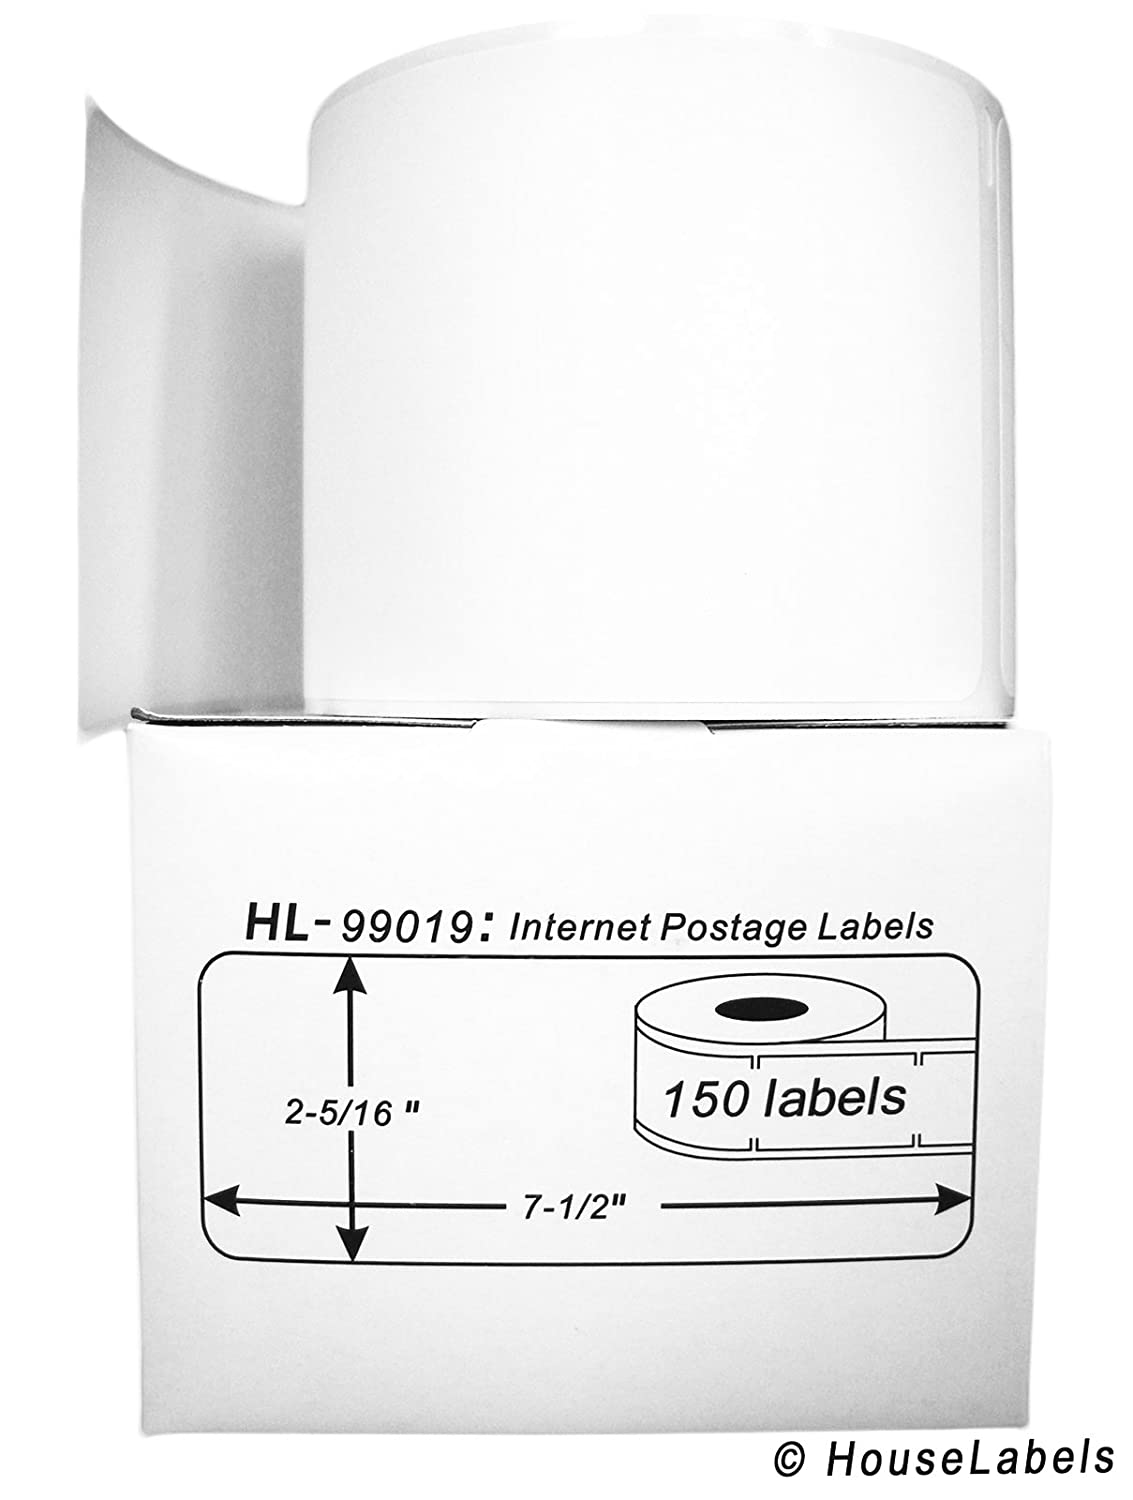 DYMO-Compatible 99019 1-Part Internet Postage Labels (2-5/16